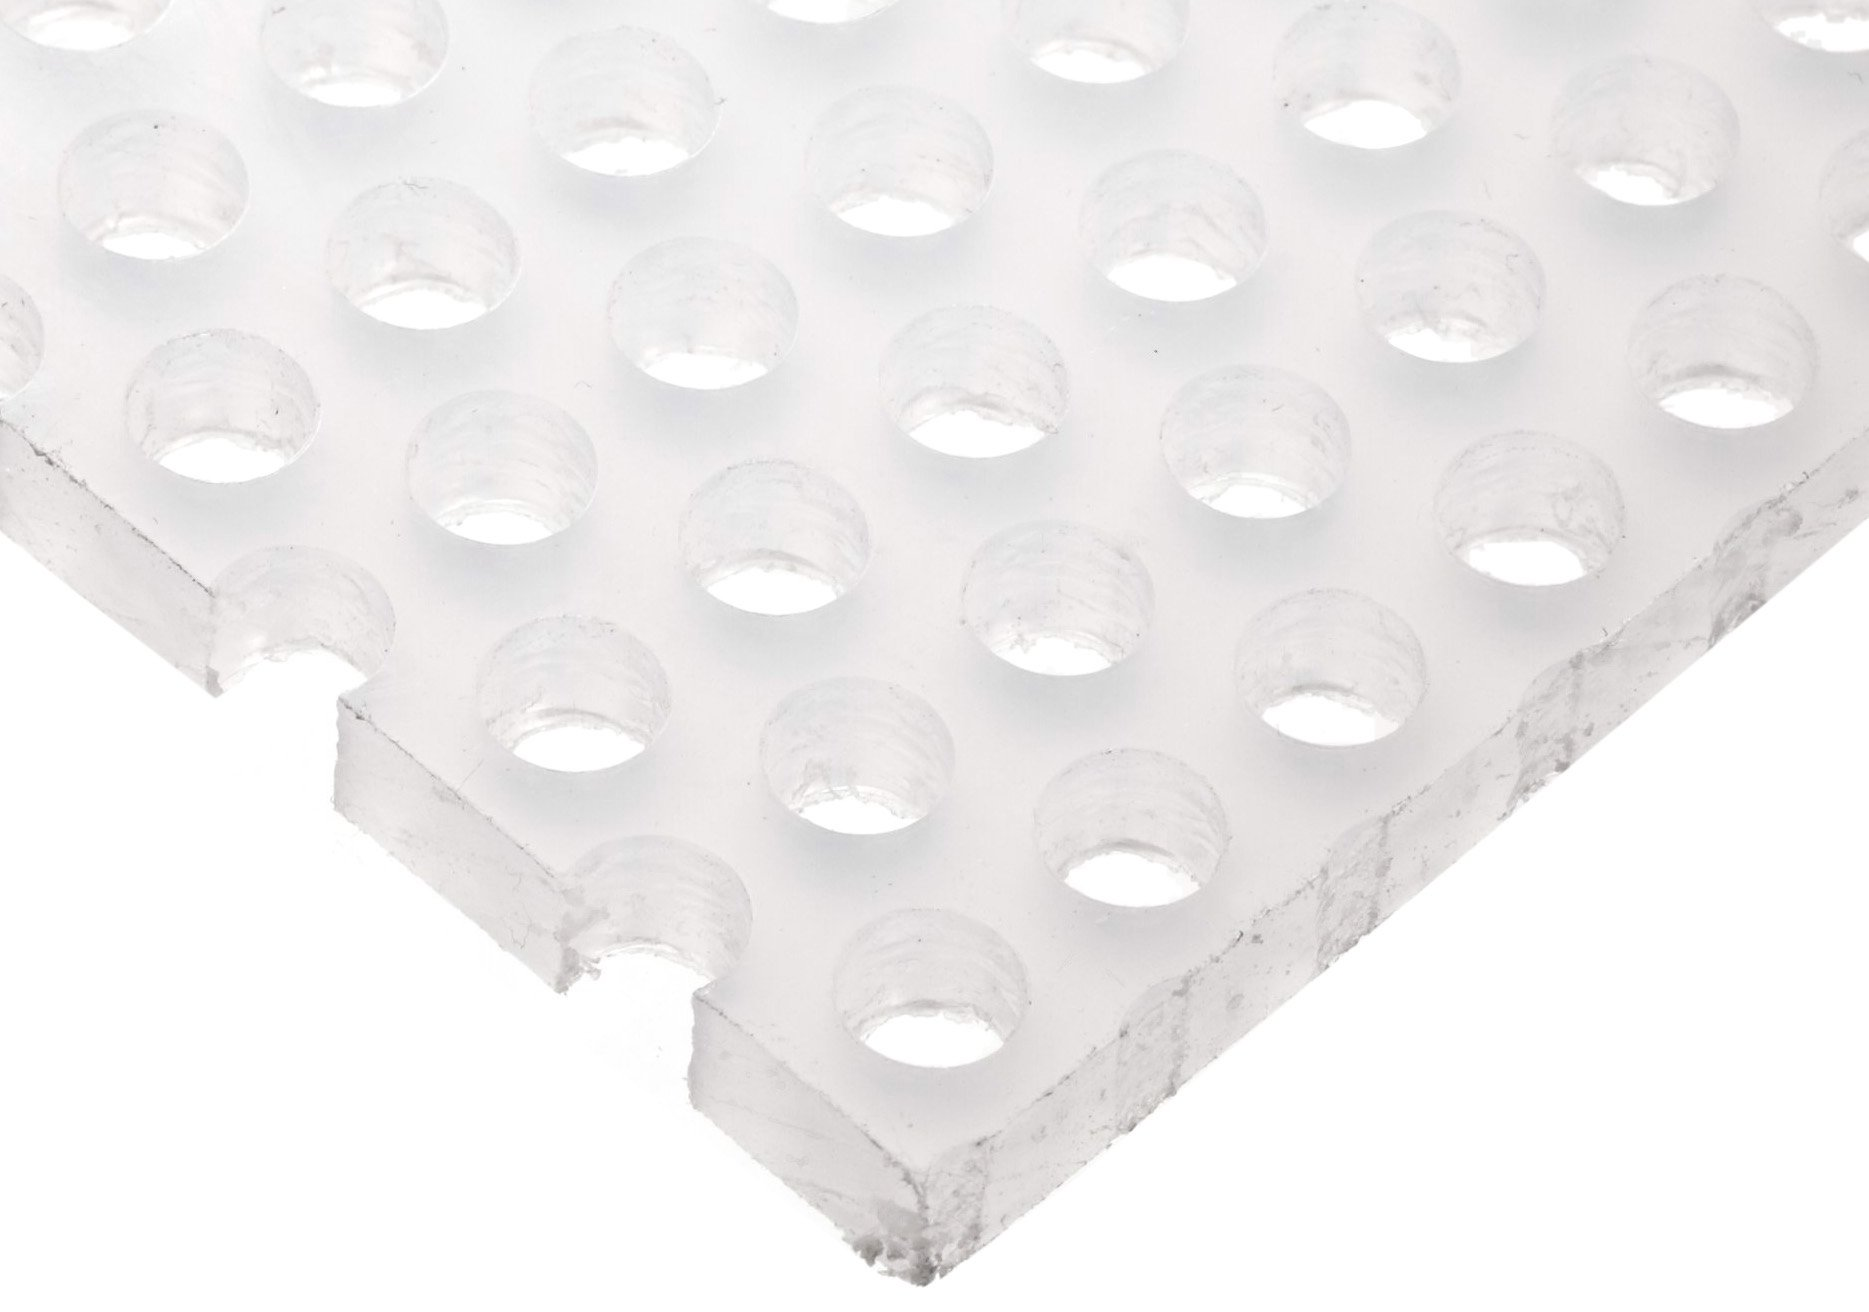 Polypropylene (PP) Perforated Sheet, Straight Holes, Opaque White, 0.250'' Thickness, 12'' Width, 12'' Length, Straight 1/4'' Holes, 0.375'' Center to Center